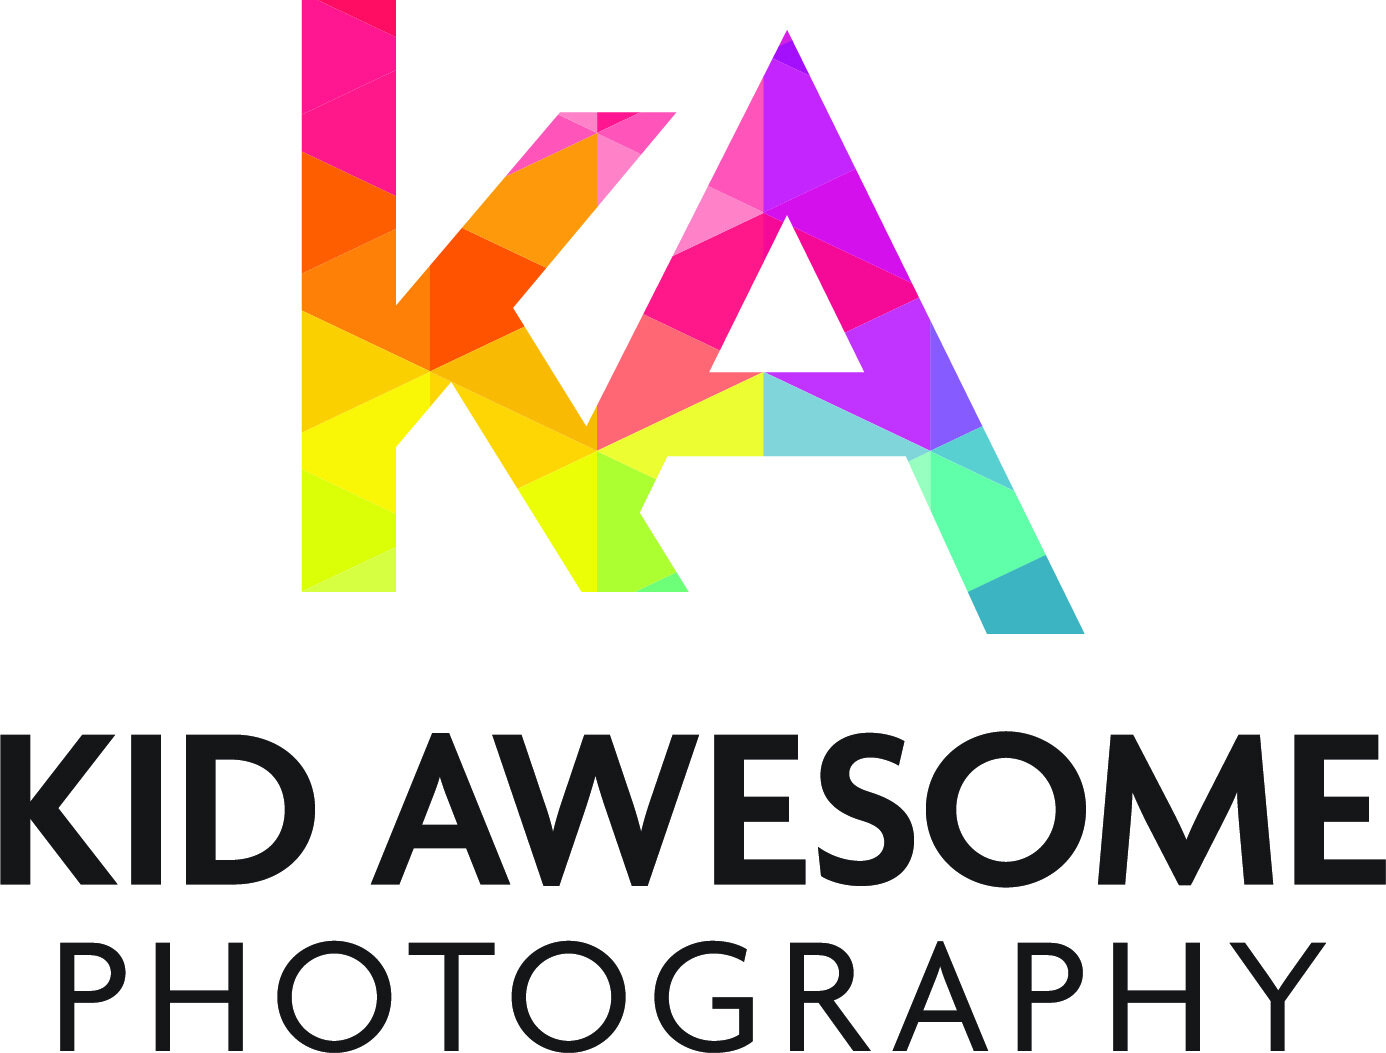 Kid Awesome Photography